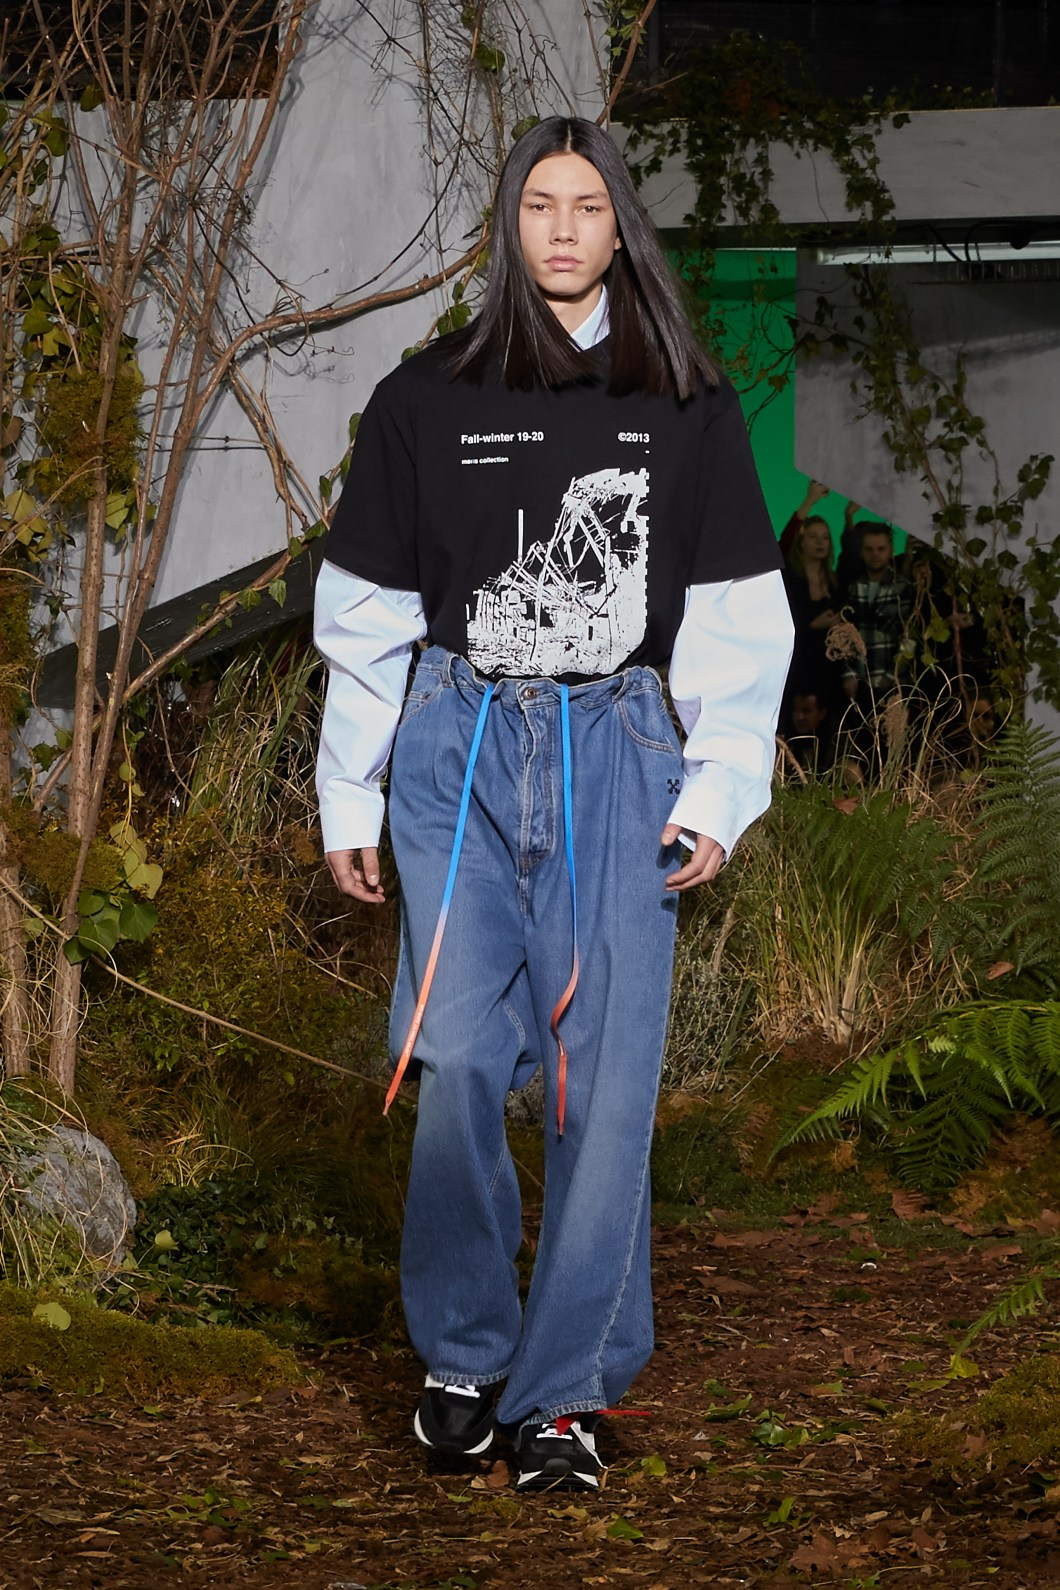 b744e4947980 Check Out the Off-White Styles that Lit Up Paris Men s Fashion Week - The  Moment Magazine - Culture